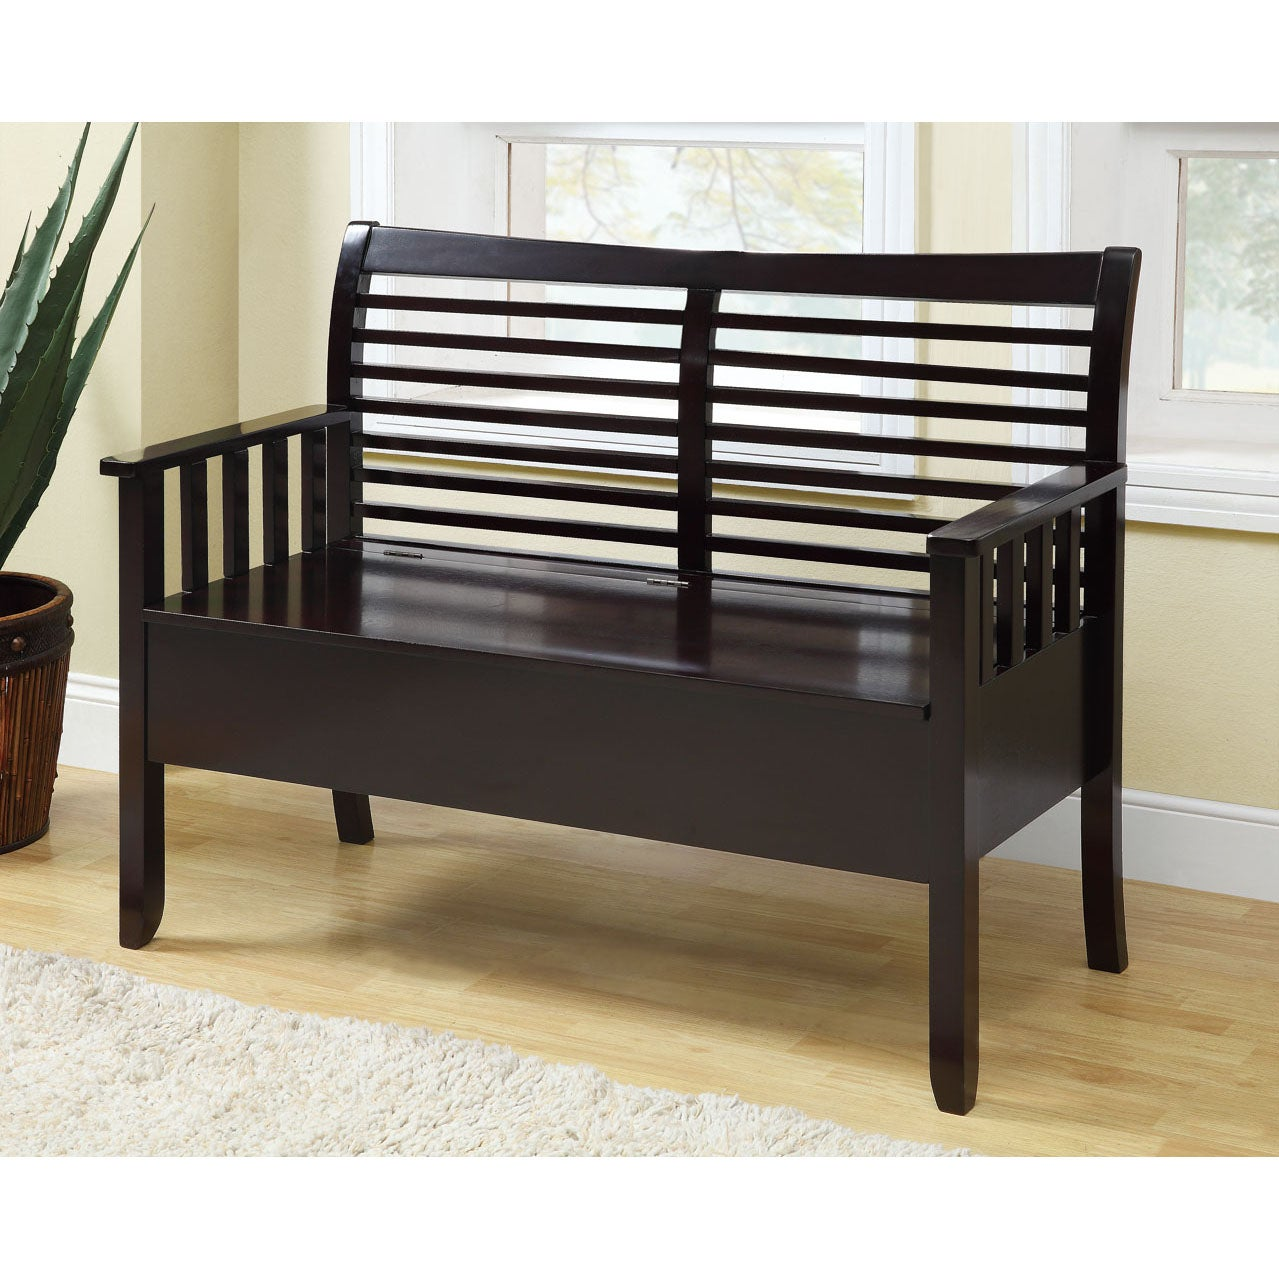 Cappuccino Solid Wood Slatted Back Bench With Storage 14349457 Shopping